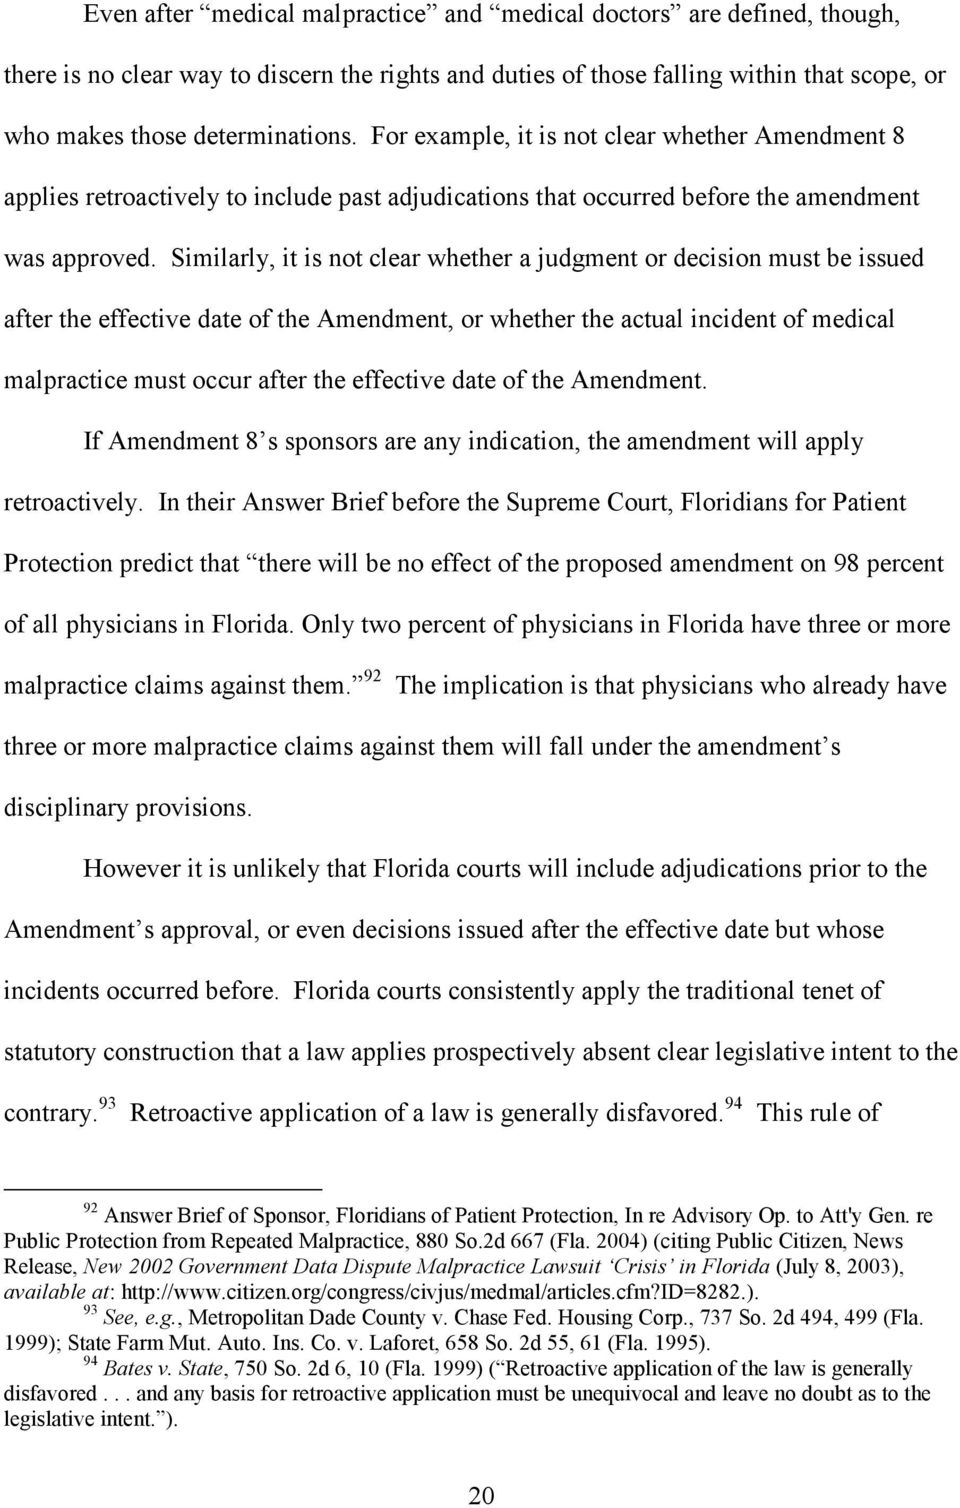 Similarly, it is not clear whether a judgment or decision must be issued after the effective date of the Amendment, or whether the actual incident of medical malpractice must occur after the